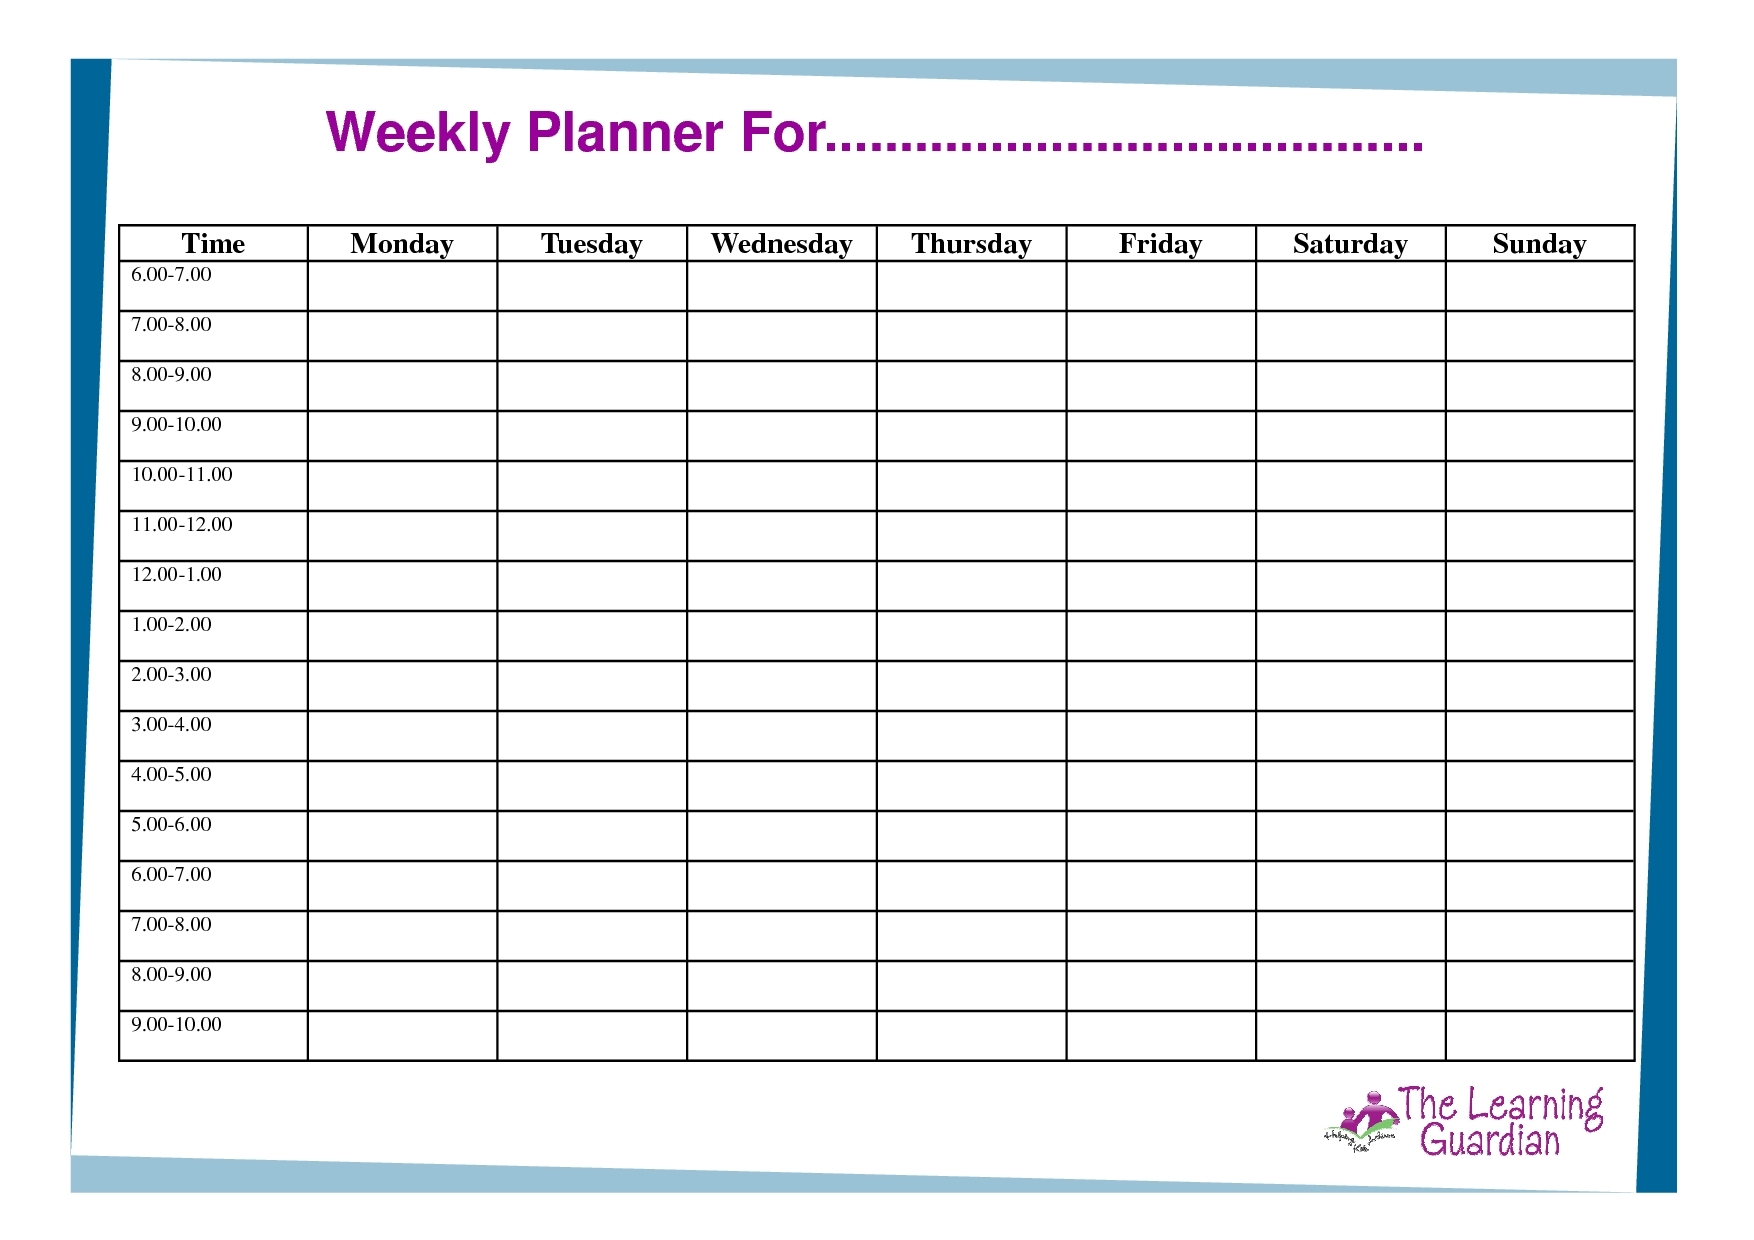 Blank Weekly Calendar Monday Through Friday Schedule Template Free intended for Calendar Monday Through Friday Schedule